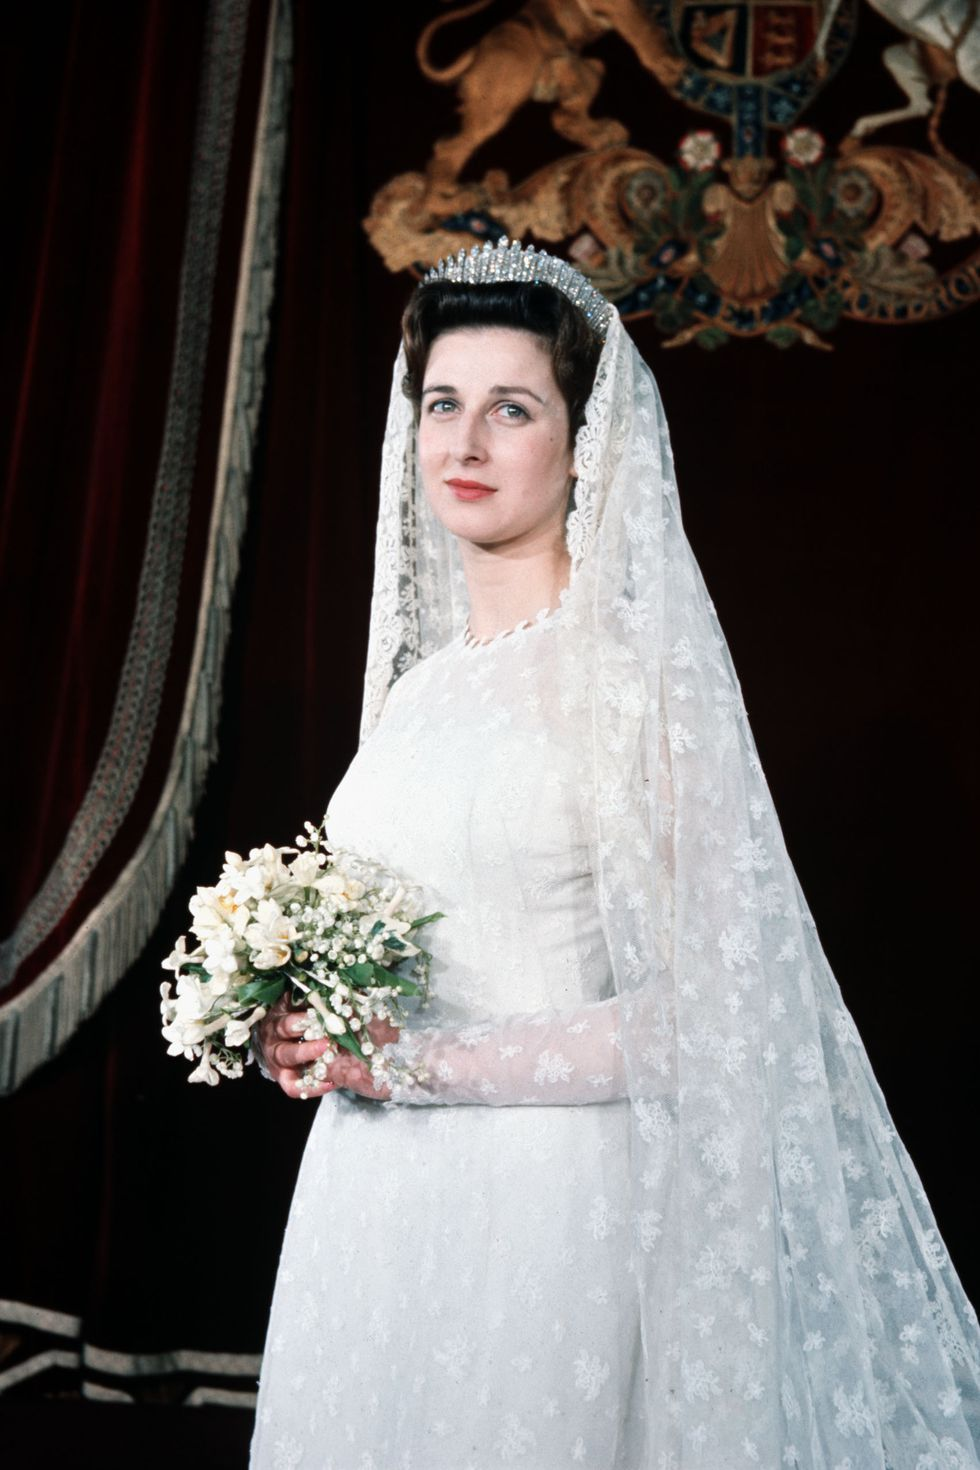 Royal Wedding Tiaras in History - 23 Best Royal Family Tiaras Ever